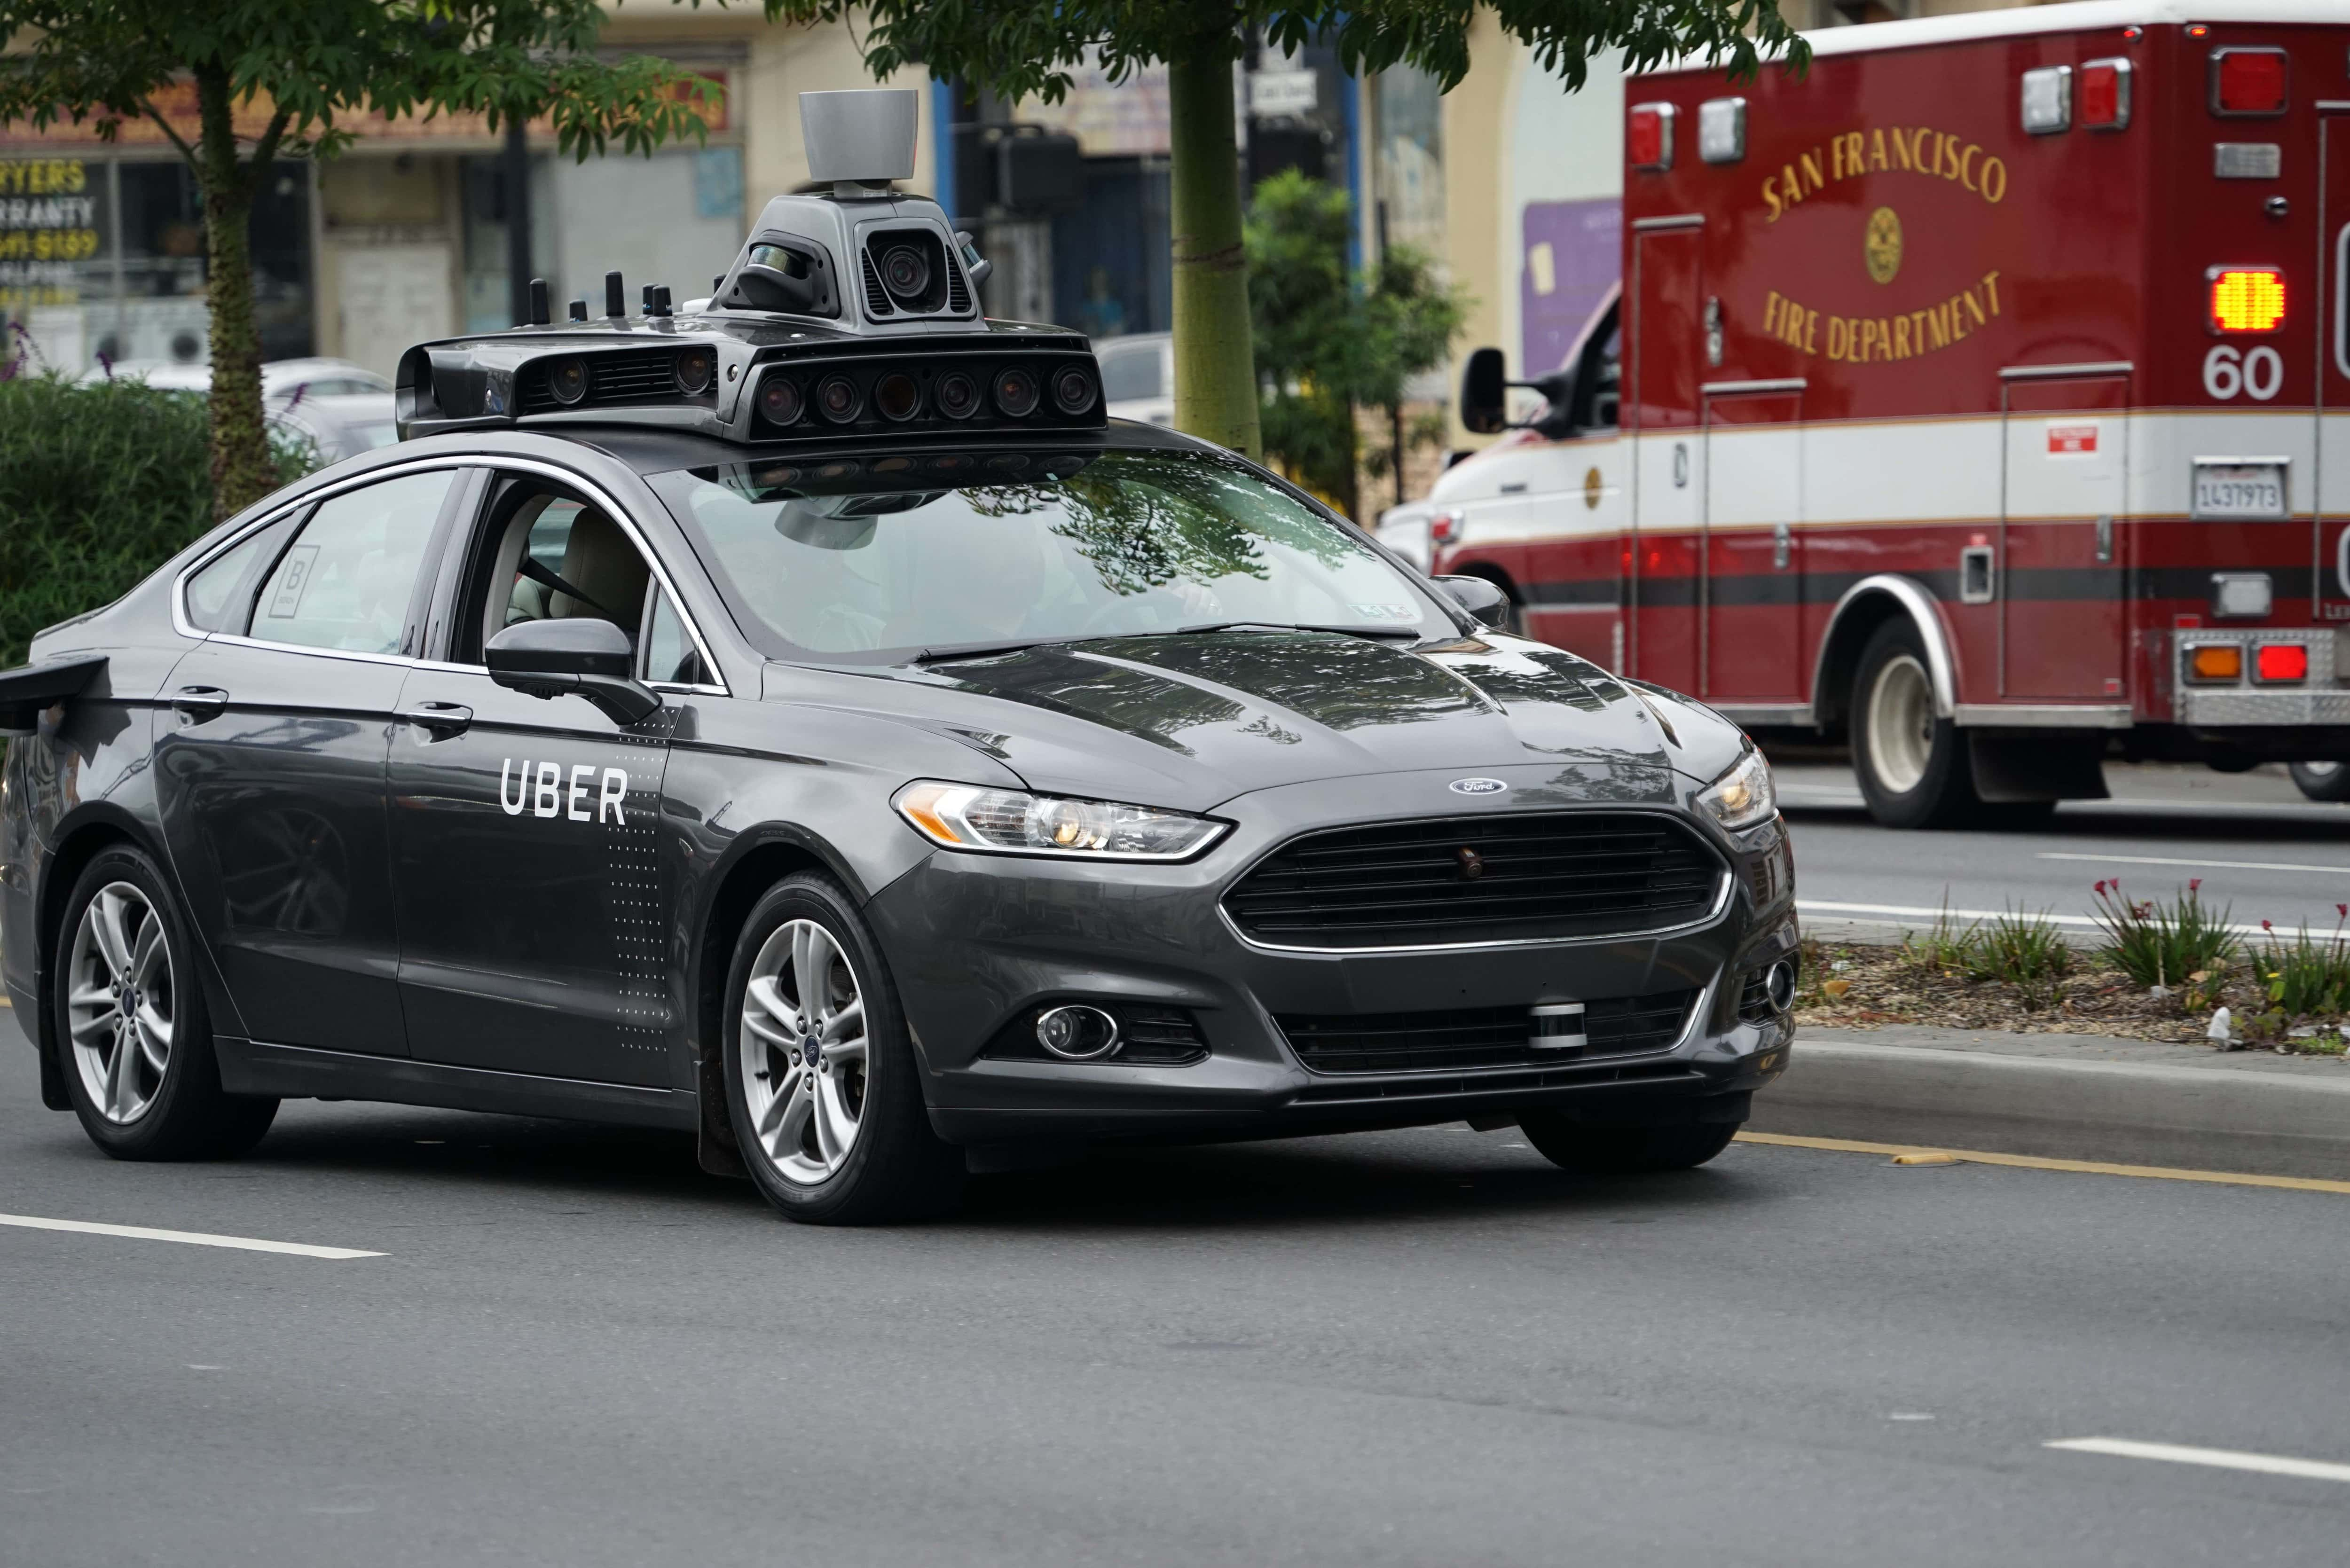 A Ford-built Uber autonomous vehicle prototype spotted in San Francisco on November 6, 2016. (Image Credit: Dllu: Wikimedia Commons)